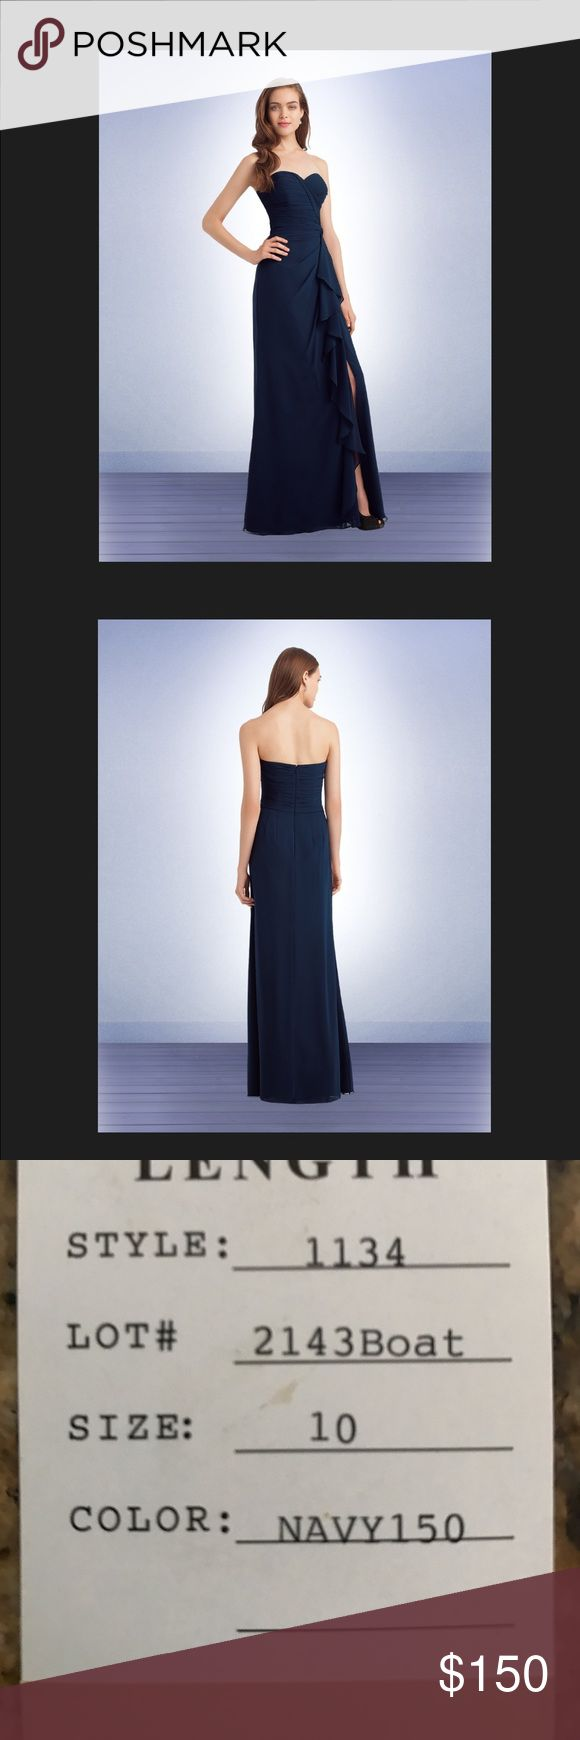 """Bill Levkoff Bridesmaid Dress Style # 1134 in Navy Bill Levkoff Bridesmaid dress. Style # 1134 in navy. size 10. Slit hit just above the knee so had it taken up to hit mid thigh/just below finger tips. I also had the dress hemmed. I'm 5'3"""". I wore the 4 inch heels pictured. (The shoes are not for sale but are pictured for reference). It is in excellent condition. It was only worn once. Navy. Blue. Sweetheart neckline. Strapless. Prom. Wedding. Bridesmaid. Floor length. Slit. Bill Levkoff…"""